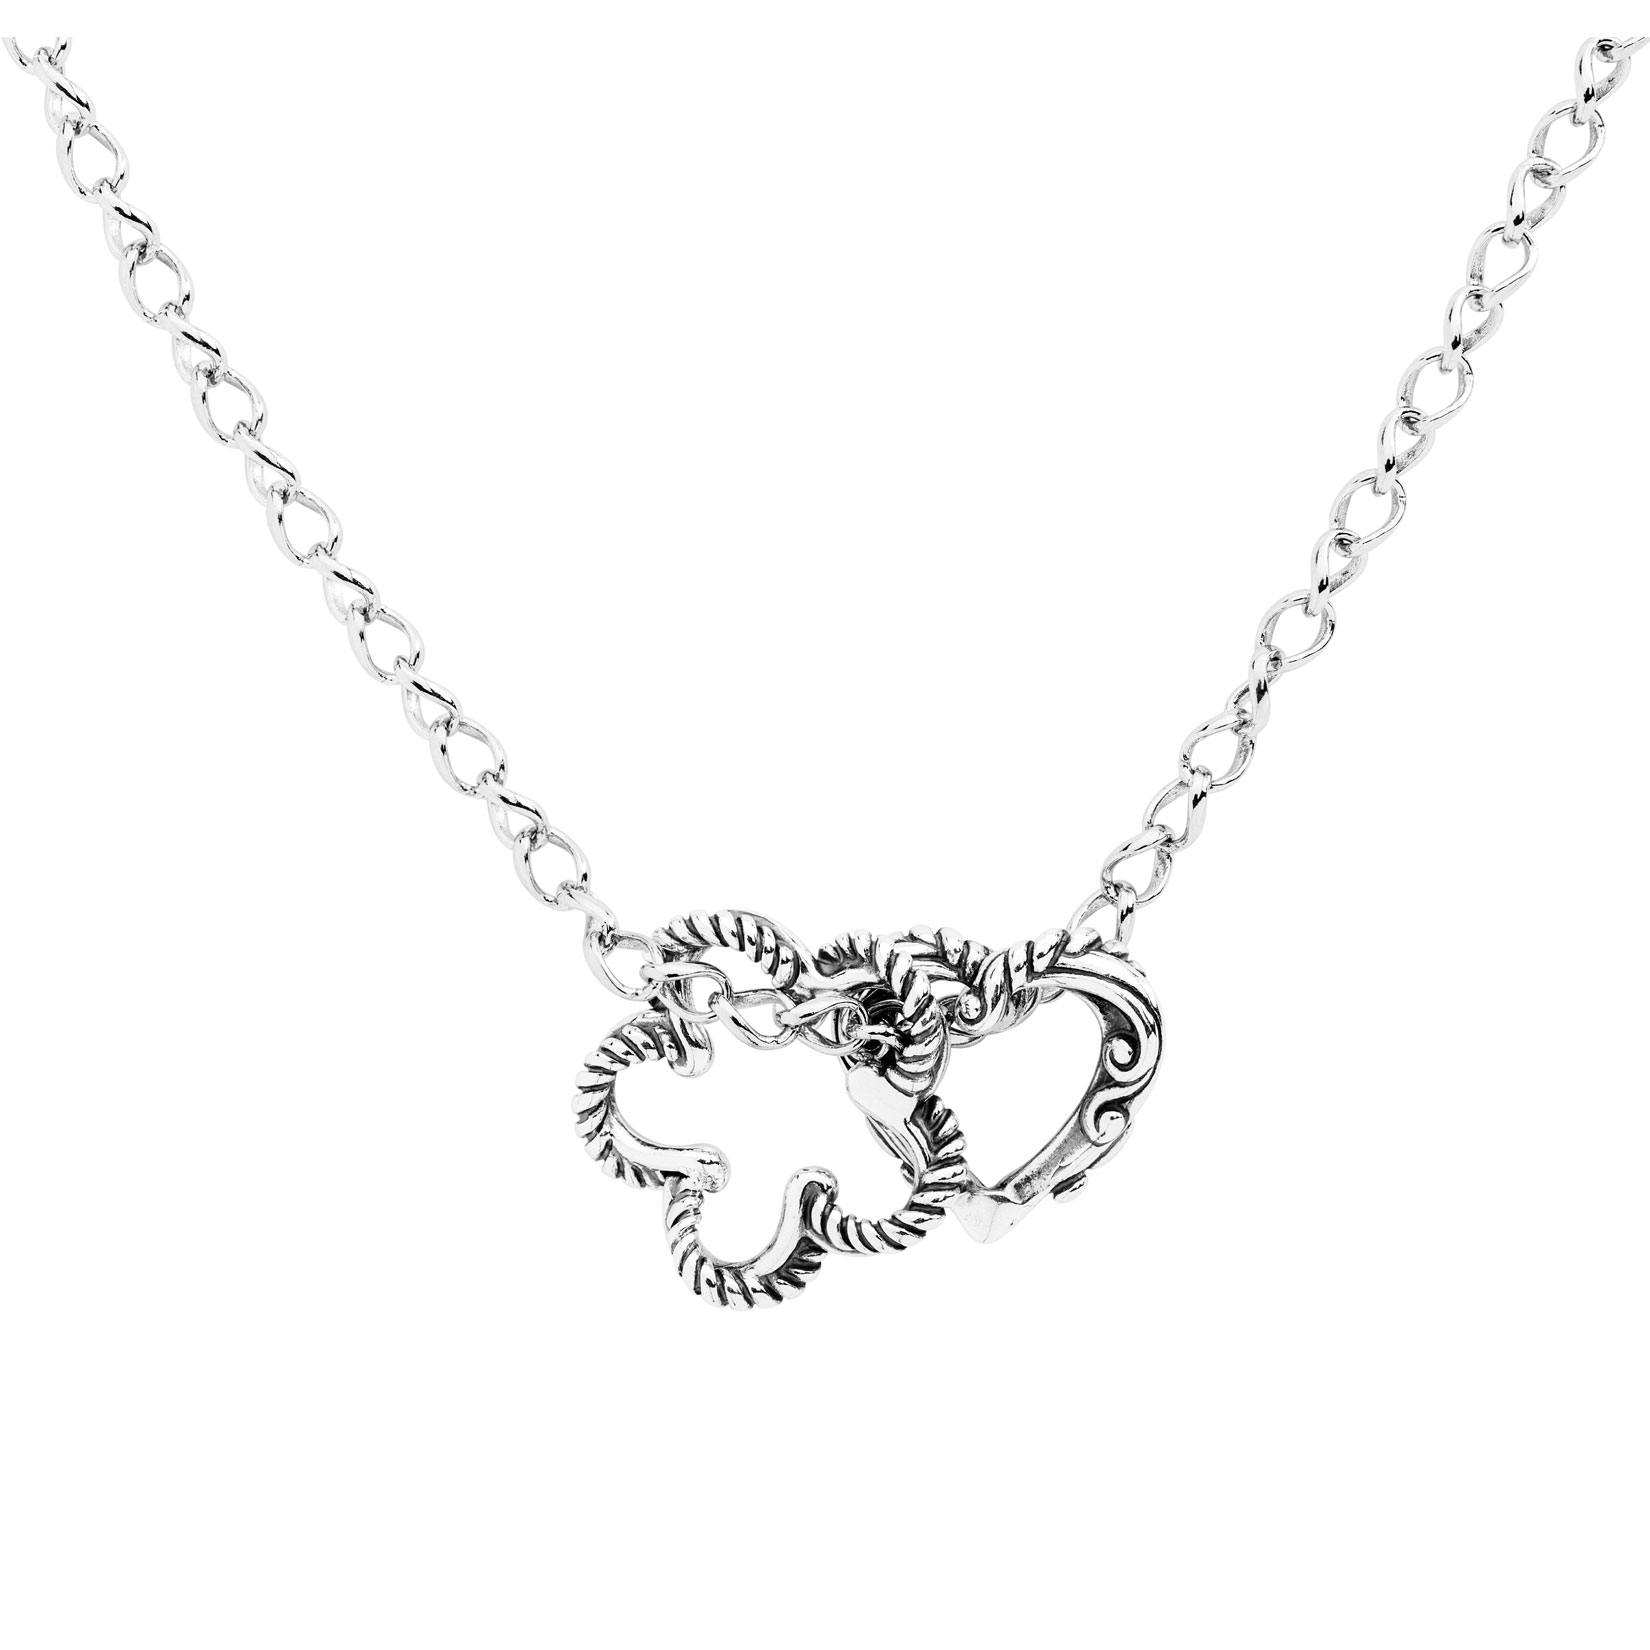 Lasting_Connections_Sterling_Silver_Heart_and_Flower_Necklace